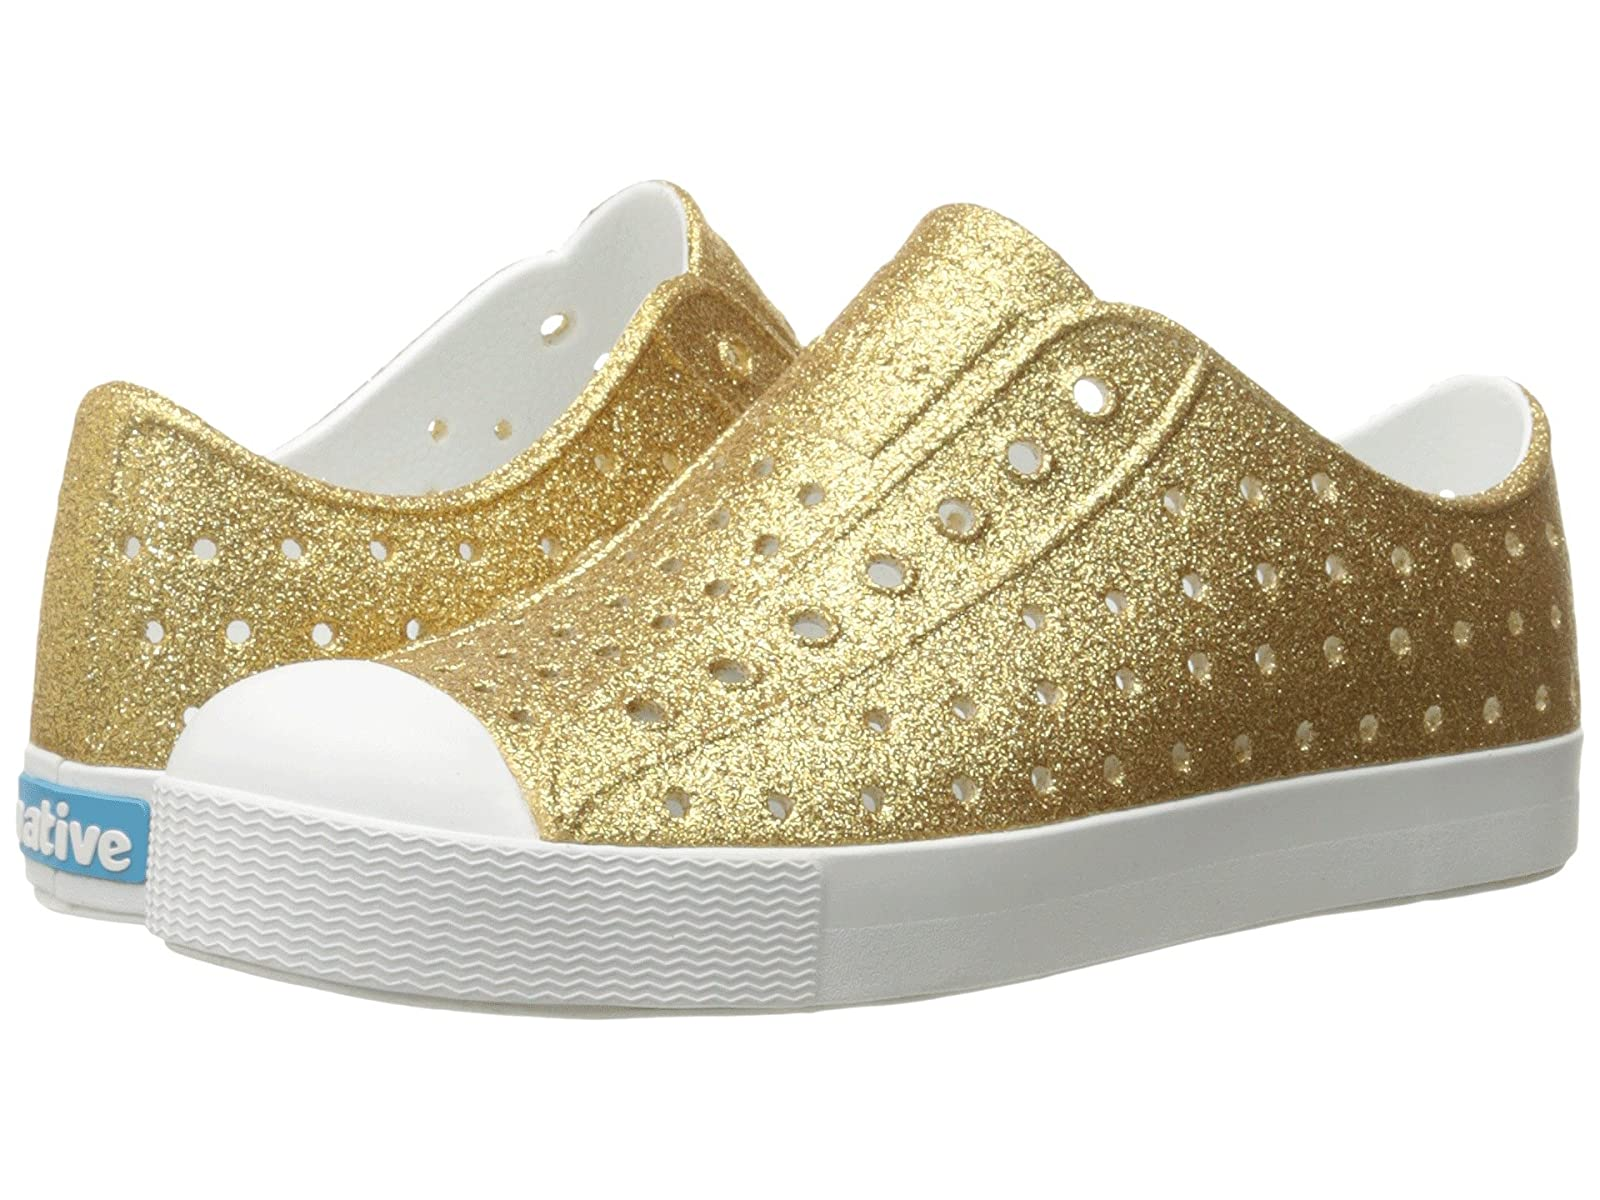 Native Kids Shoes Jefferson Bling Glitter (Little Kid)Atmospheric grades have affordable shoes